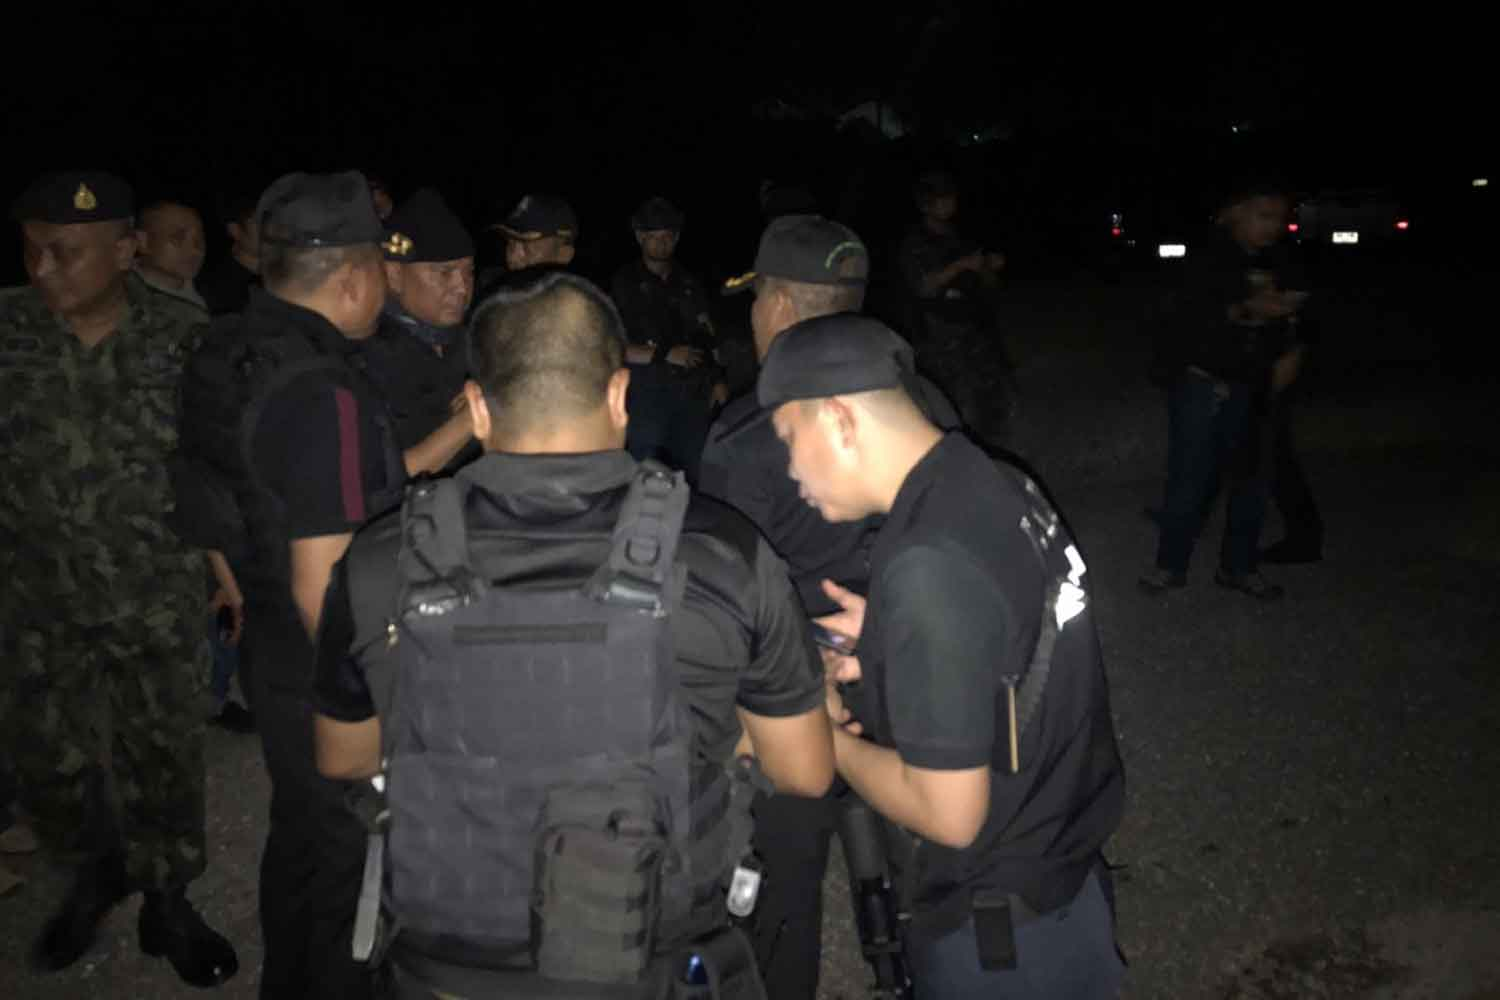 Members of a combined government force in a briefing session before being deployed to intercept suspected insurgents in Chana and Thepha districts in Songkhla province on Sunday night. Two suspected insurgents were killed in two clashes. ASSAWIN PAKKAWAN